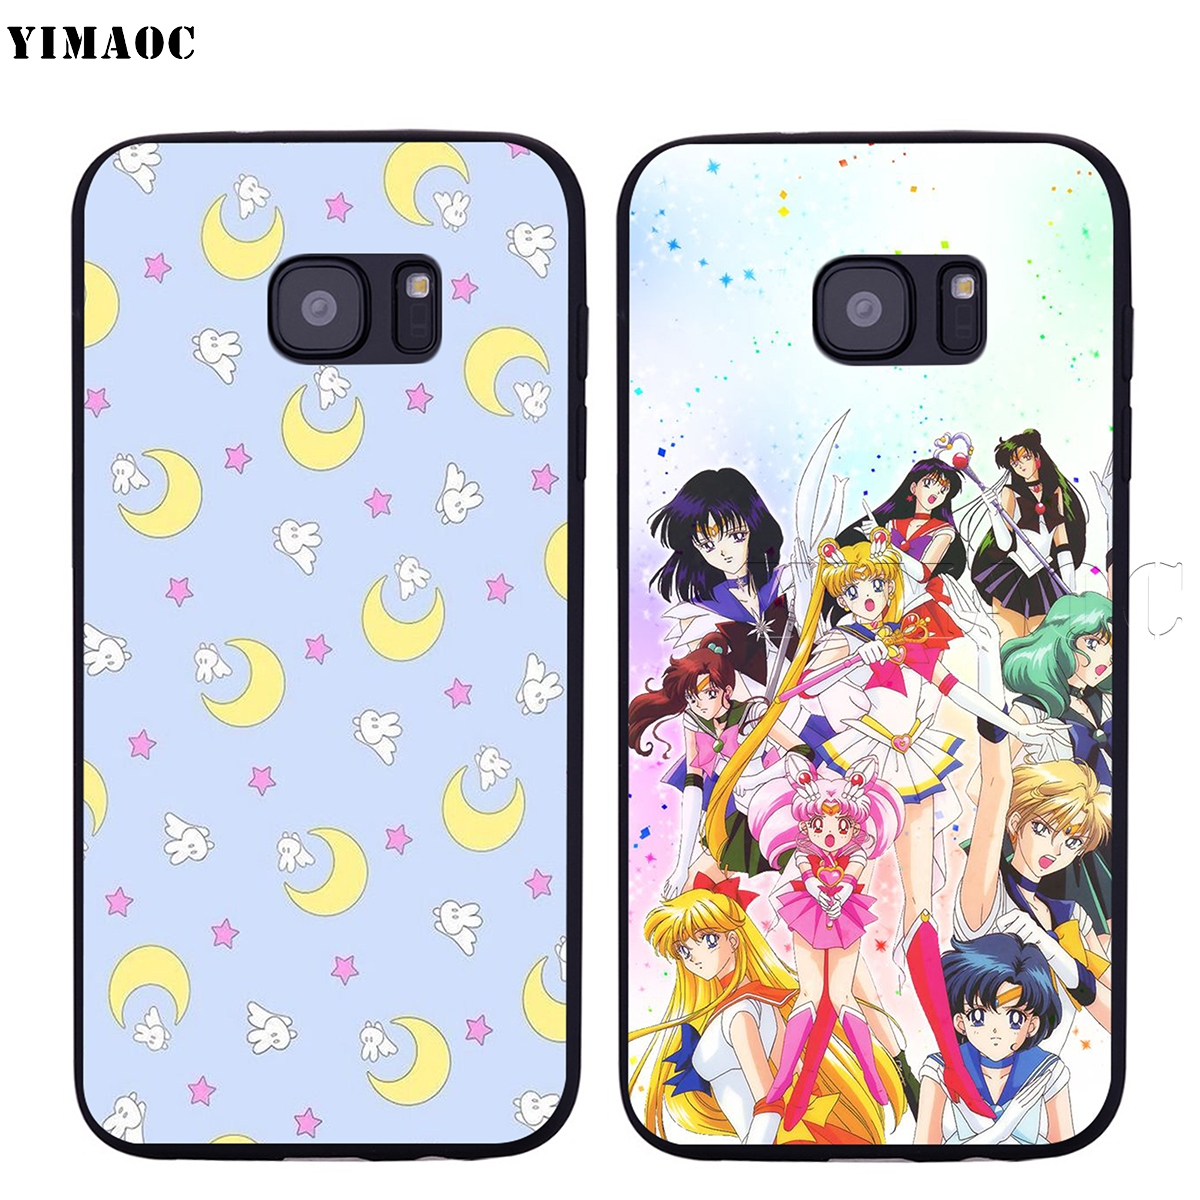 2018 A3 A5 A7 2017 Exquisite Craftsmanship; A8 A8 For Galaxy A8 Case Cartoon Sailor Moon Style Clear Frame Hard Back Case Cover For Samsung A6 A6